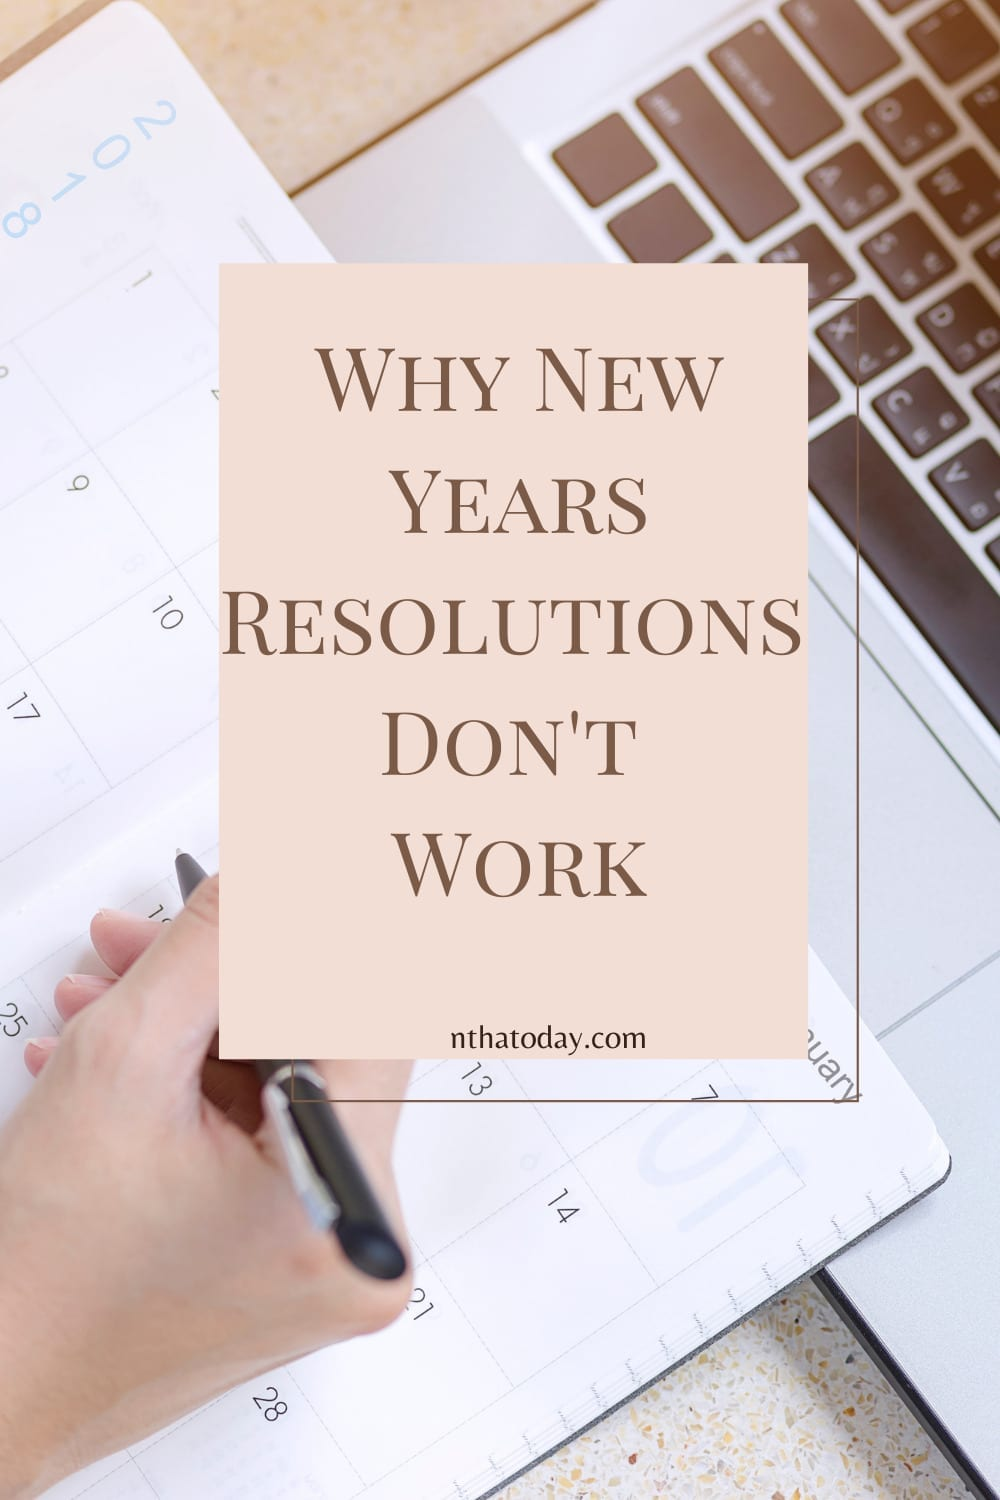 having a plan of action is better than resolutions